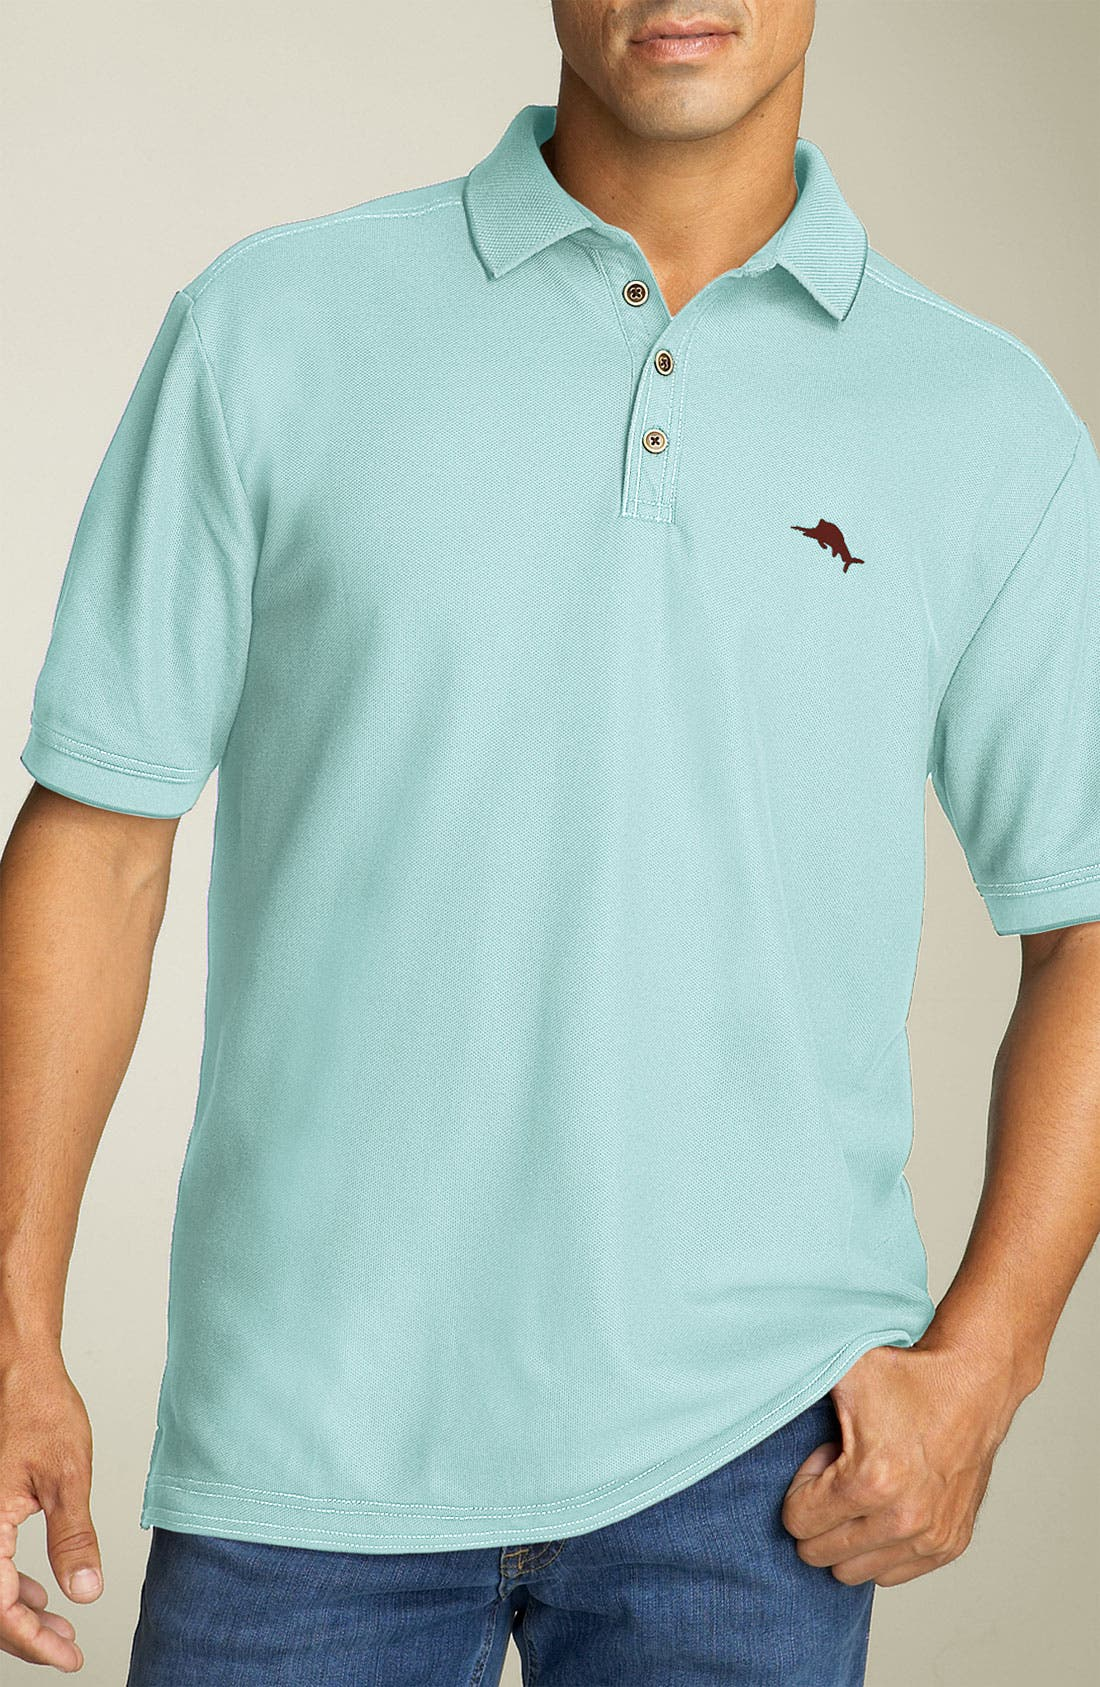 'The Emfielder' Original Fit Piqué Polo,                             Main thumbnail 84, color,